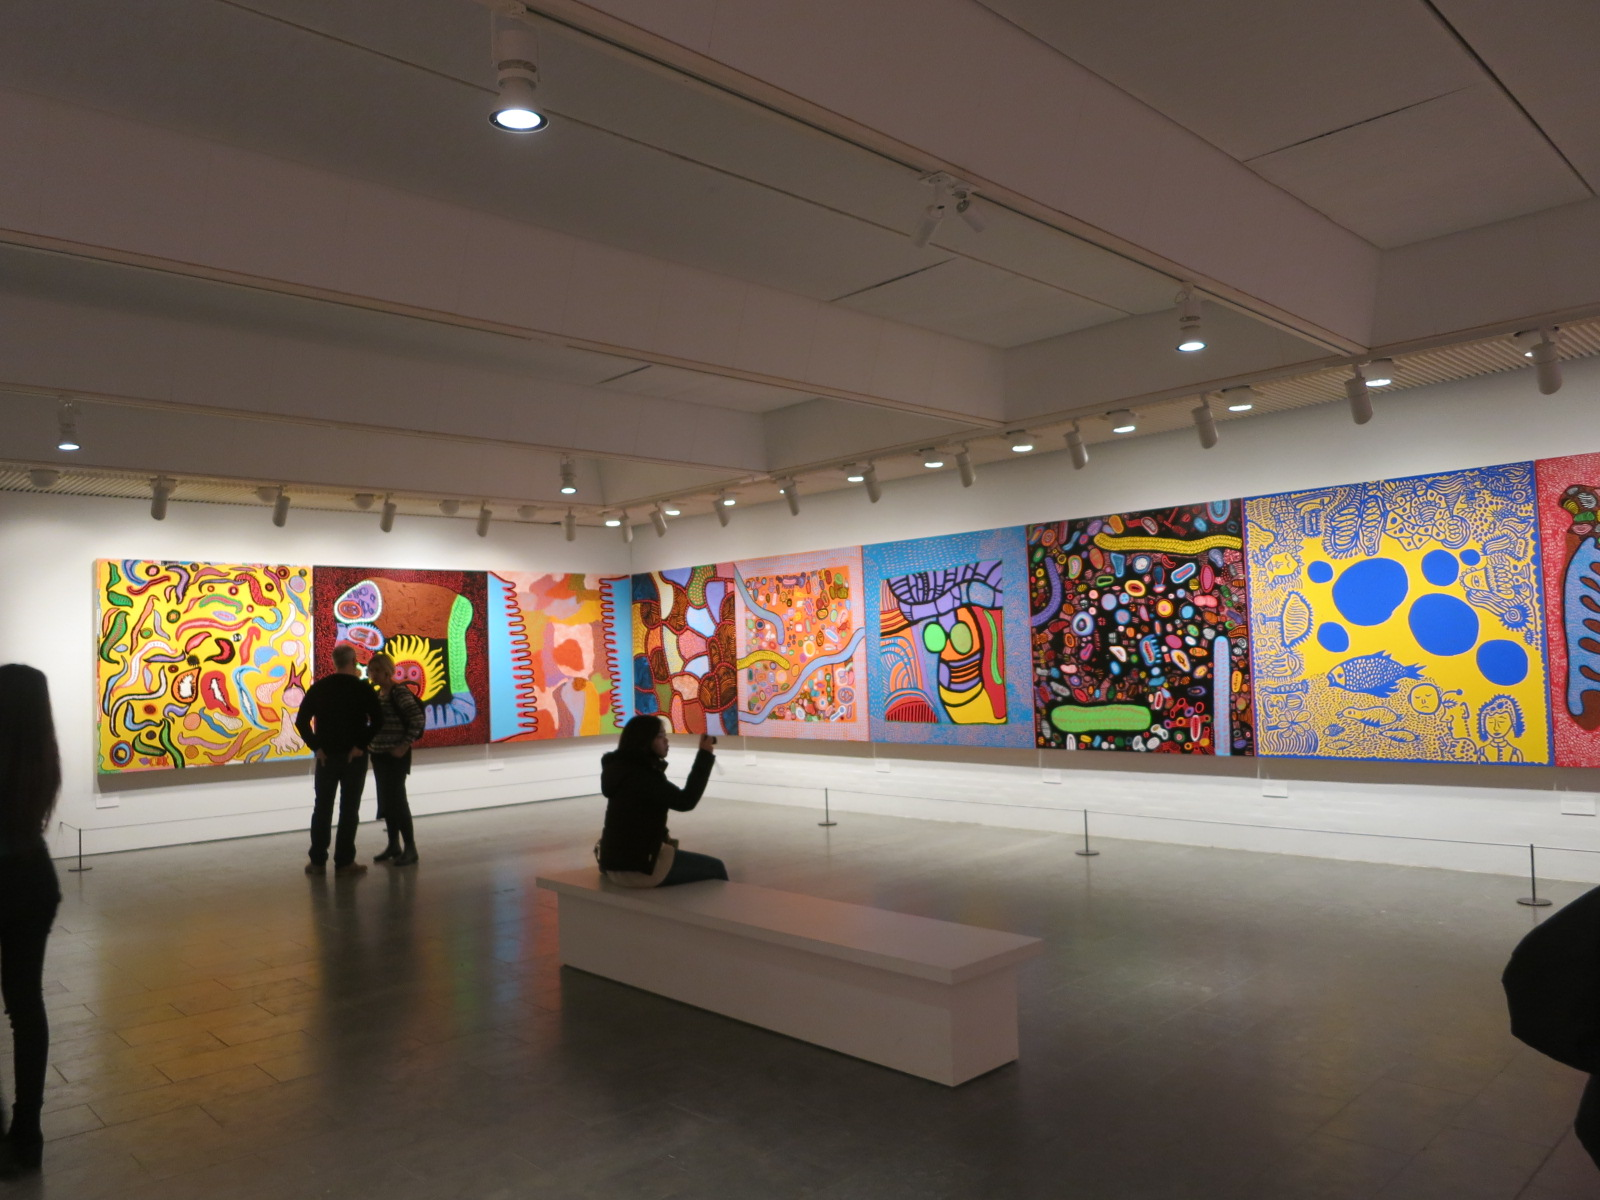 Yayoi Kusama's 'In Infinity' Retrospective exhibition at the Louisiana Museum of Modern Art, Denmark 2015